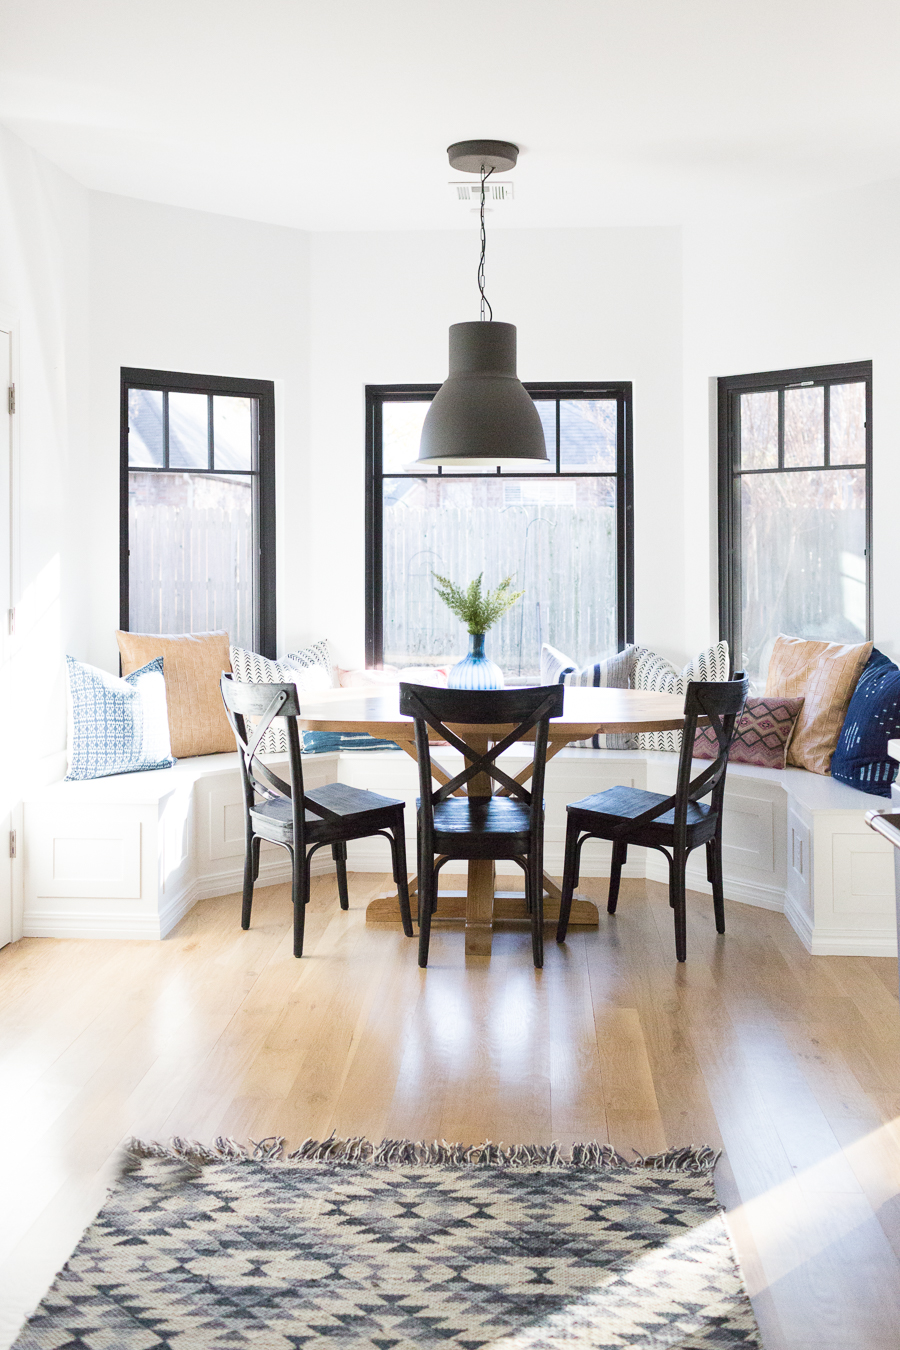 Tulsa Remodel Reveal Modern White Farmhouse black windows and doors black windows and doors built in window seat banquette dining room black pendant lighting-1